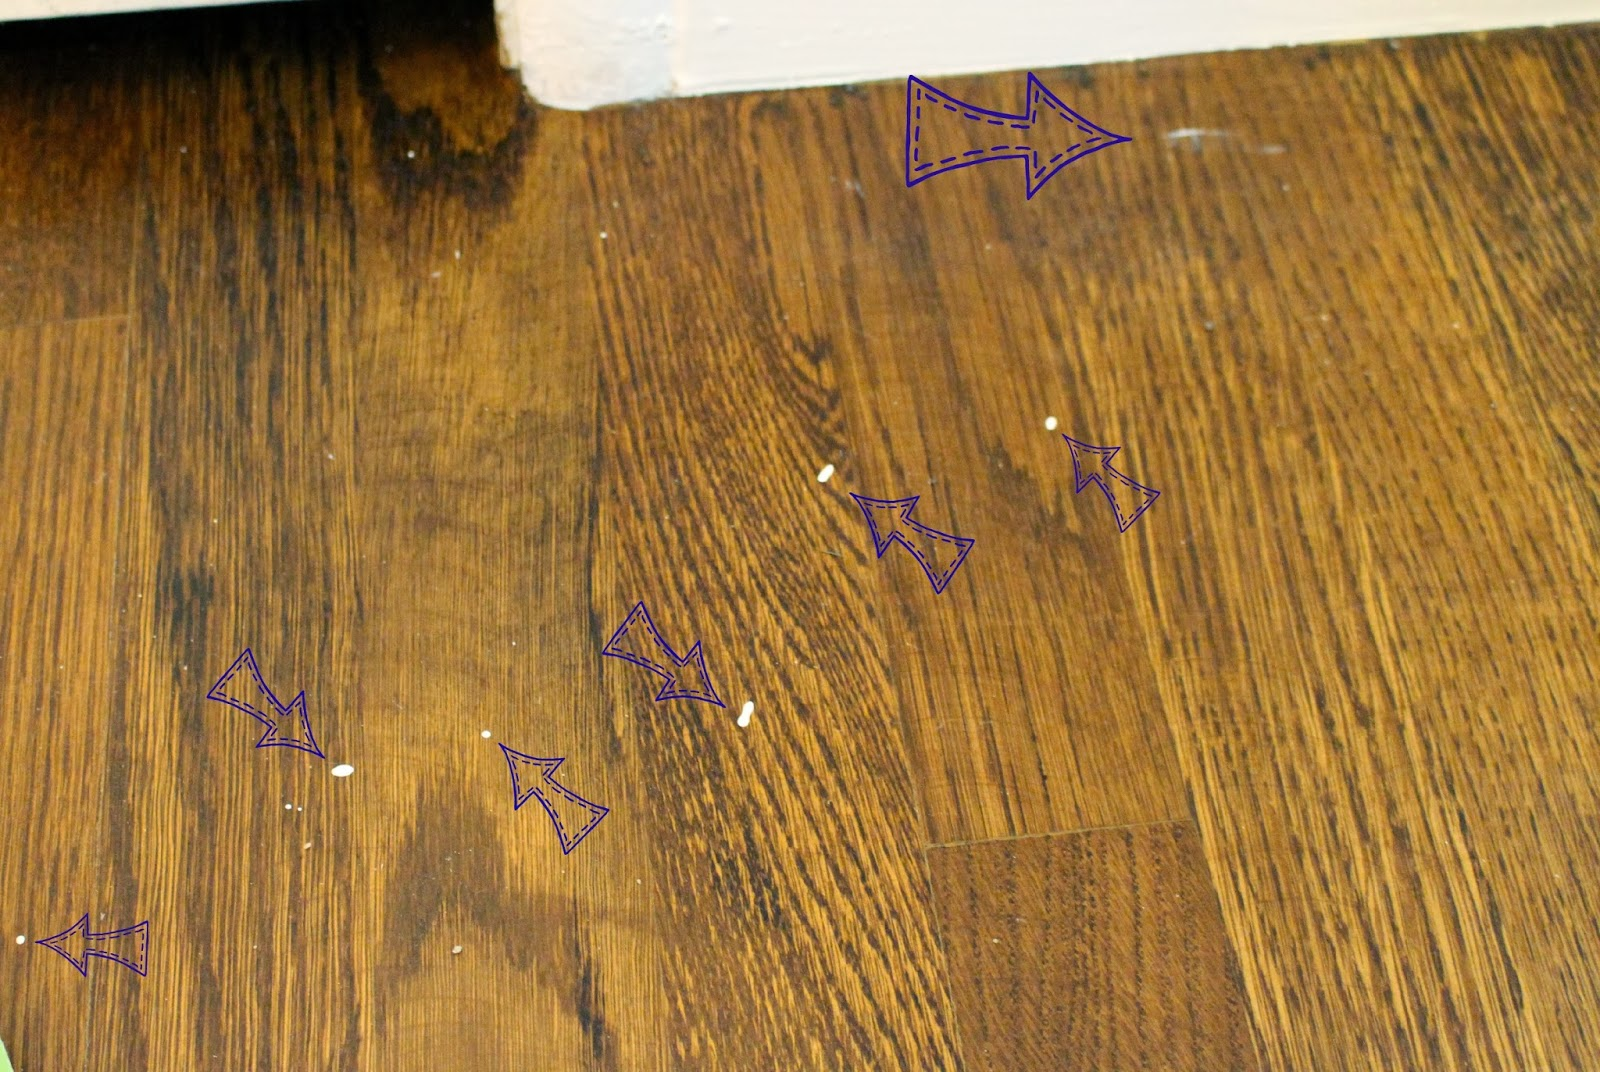 All Those Arrows Are Paint Spots On My Wood Floors!